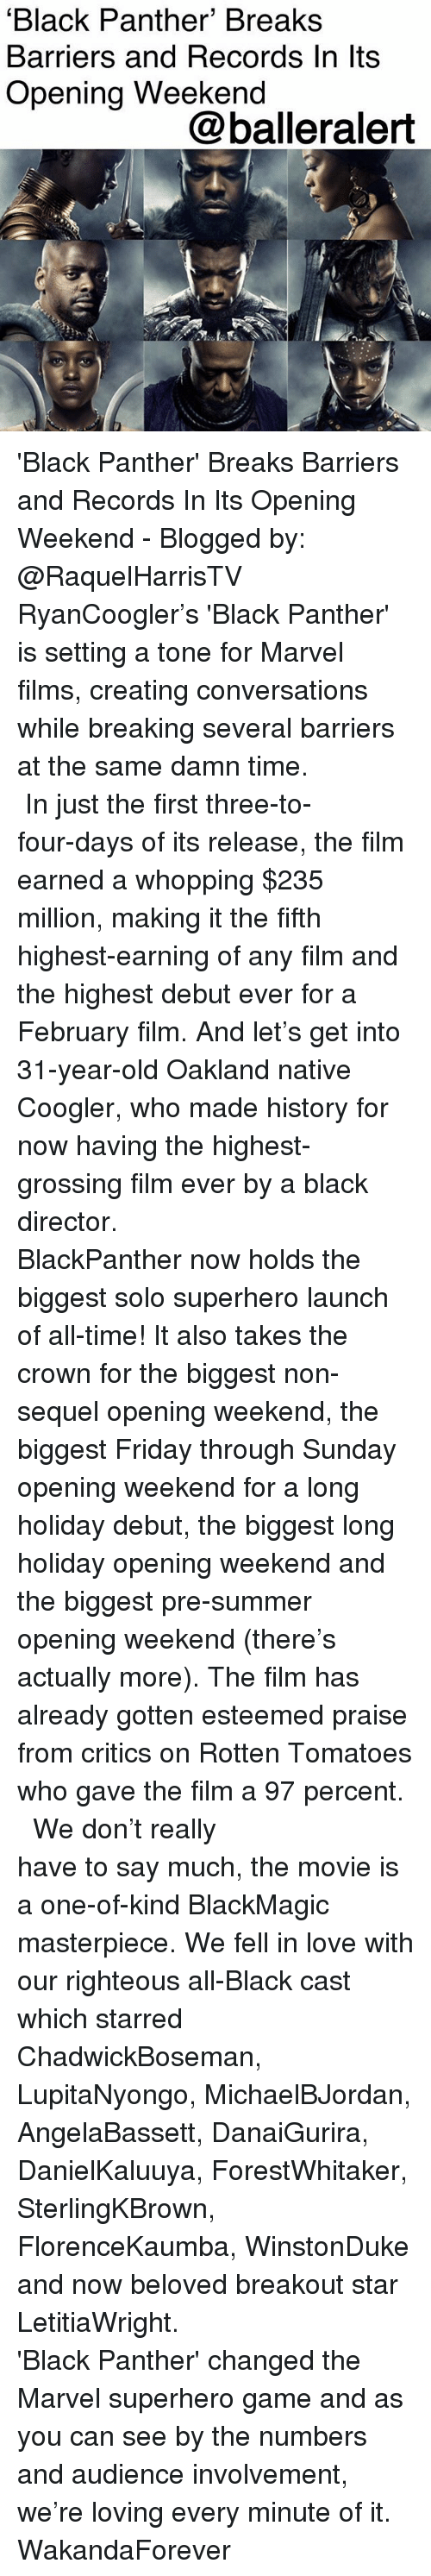 Friday, Love, and Memes: 'Black Panther' Breaks  Barriers and Records In lts  Opening Weekend  @balleralert 'Black Panther' Breaks Barriers and Records In Its Opening Weekend - Blogged by: @RaquelHarrisTV ⠀⠀⠀⠀⠀⠀⠀⠀⠀ ⠀⠀⠀⠀⠀⠀⠀⠀⠀ RyanCoogler's 'Black Panther' is setting a tone for Marvel films, creating conversations while breaking several barriers at the same damn time. ⠀⠀⠀⠀⠀⠀⠀⠀⠀ ⠀⠀⠀⠀⠀⠀⠀⠀⠀ In just the first three-to-four-days of its release, the film earned a whopping $235 million, making it the fifth highest-earning of any film and the highest debut ever for a February film. And let's get into 31-year-old Oakland native Coogler, who made history for now having the highest-grossing film ever by a black director. ⠀⠀⠀⠀⠀⠀⠀⠀⠀ ⠀⠀⠀⠀⠀⠀⠀⠀⠀ BlackPanther now holds the biggest solo superhero launch of all-time! It also takes the crown for the biggest non-sequel opening weekend, the biggest Friday through Sunday opening weekend for a long holiday debut, the biggest long holiday opening weekend and the biggest pre-summer opening weekend (there's actually more). The film has already gotten esteemed praise from critics on Rotten Tomatoes who gave the film a 97 percent. ⠀⠀⠀⠀⠀⠀⠀⠀⠀ ⠀⠀⠀⠀⠀⠀⠀⠀⠀ We don't really have to say much, the movie is a one-of-kind BlackMagic masterpiece. We fell in love with our righteous all-Black cast which starred ChadwickBoseman, LupitaNyongo, MichaelBJordan, AngelaBassett, DanaiGurira, DanielKaluuya, ForestWhitaker, SterlingKBrown, FlorenceKaumba, WinstonDuke and now beloved breakout star LetitiaWright. ⠀⠀⠀⠀⠀⠀⠀⠀⠀ ⠀⠀⠀⠀⠀⠀⠀⠀⠀ 'Black Panther' changed the Marvel superhero game and as you can see by the numbers and audience involvement, we're loving every minute of it. WakandaForever